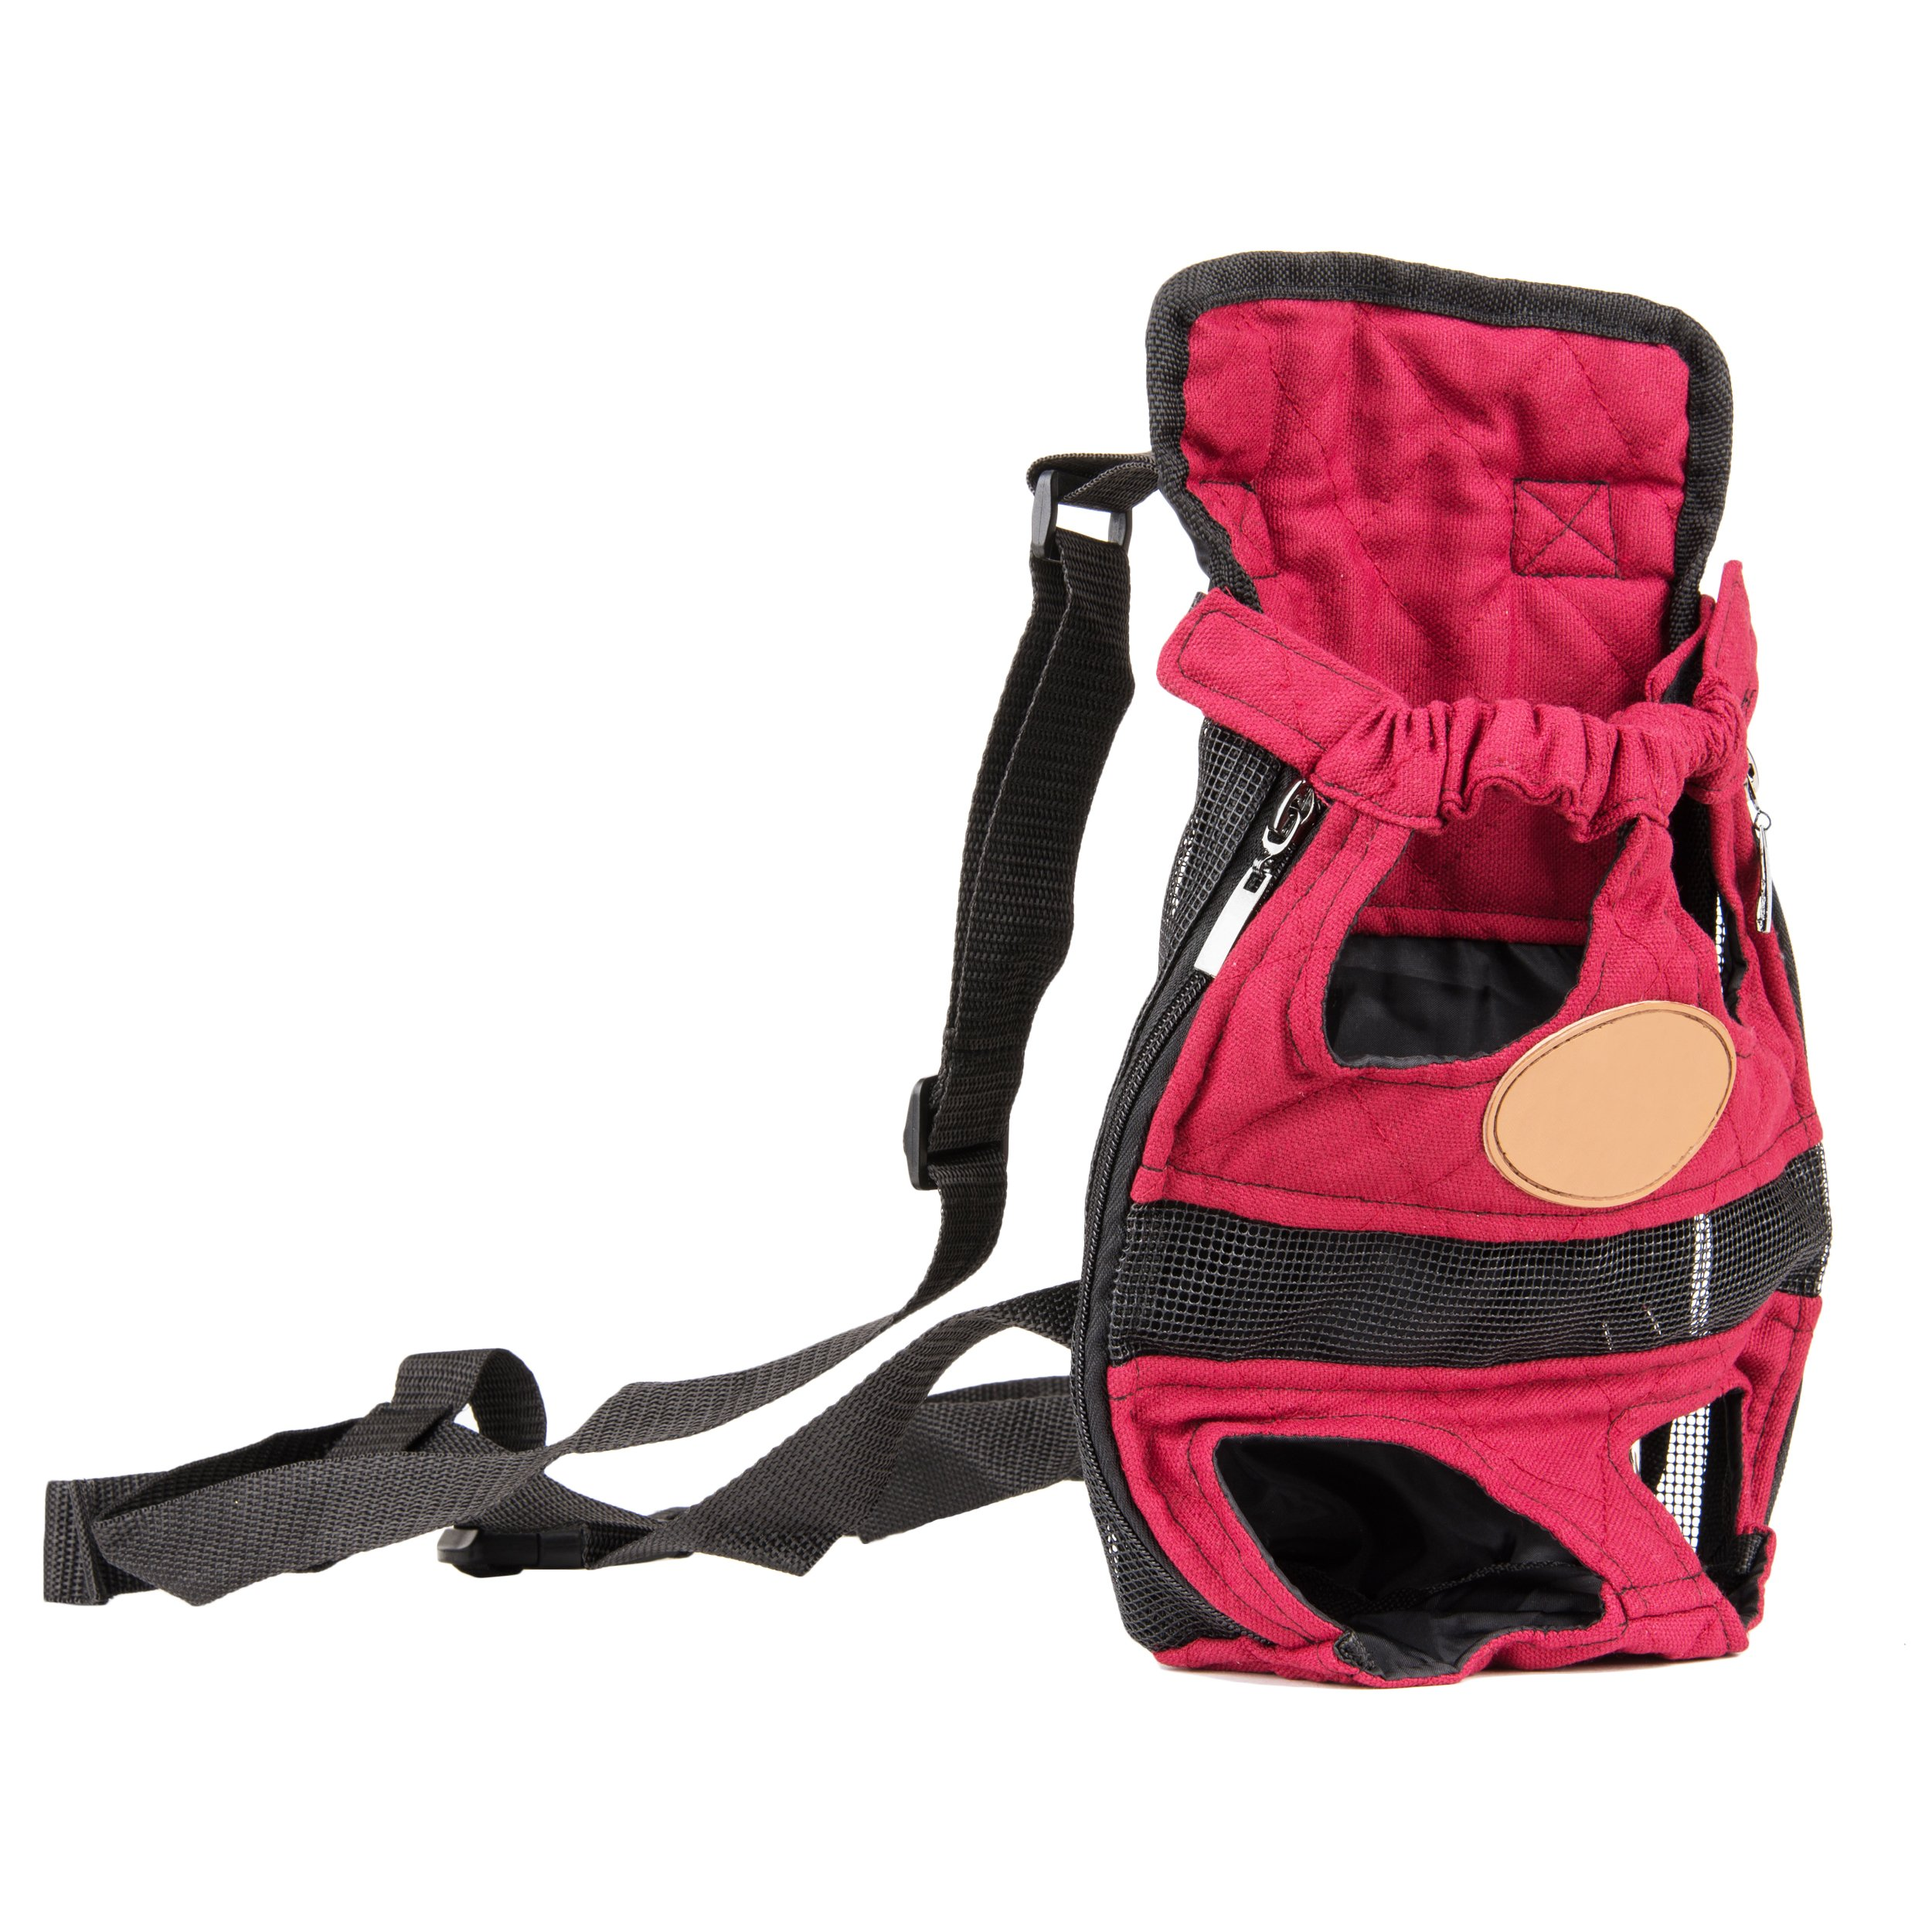 Cue Cue Pet Modernized Travel Red Pet Carrier Backpack (Large)